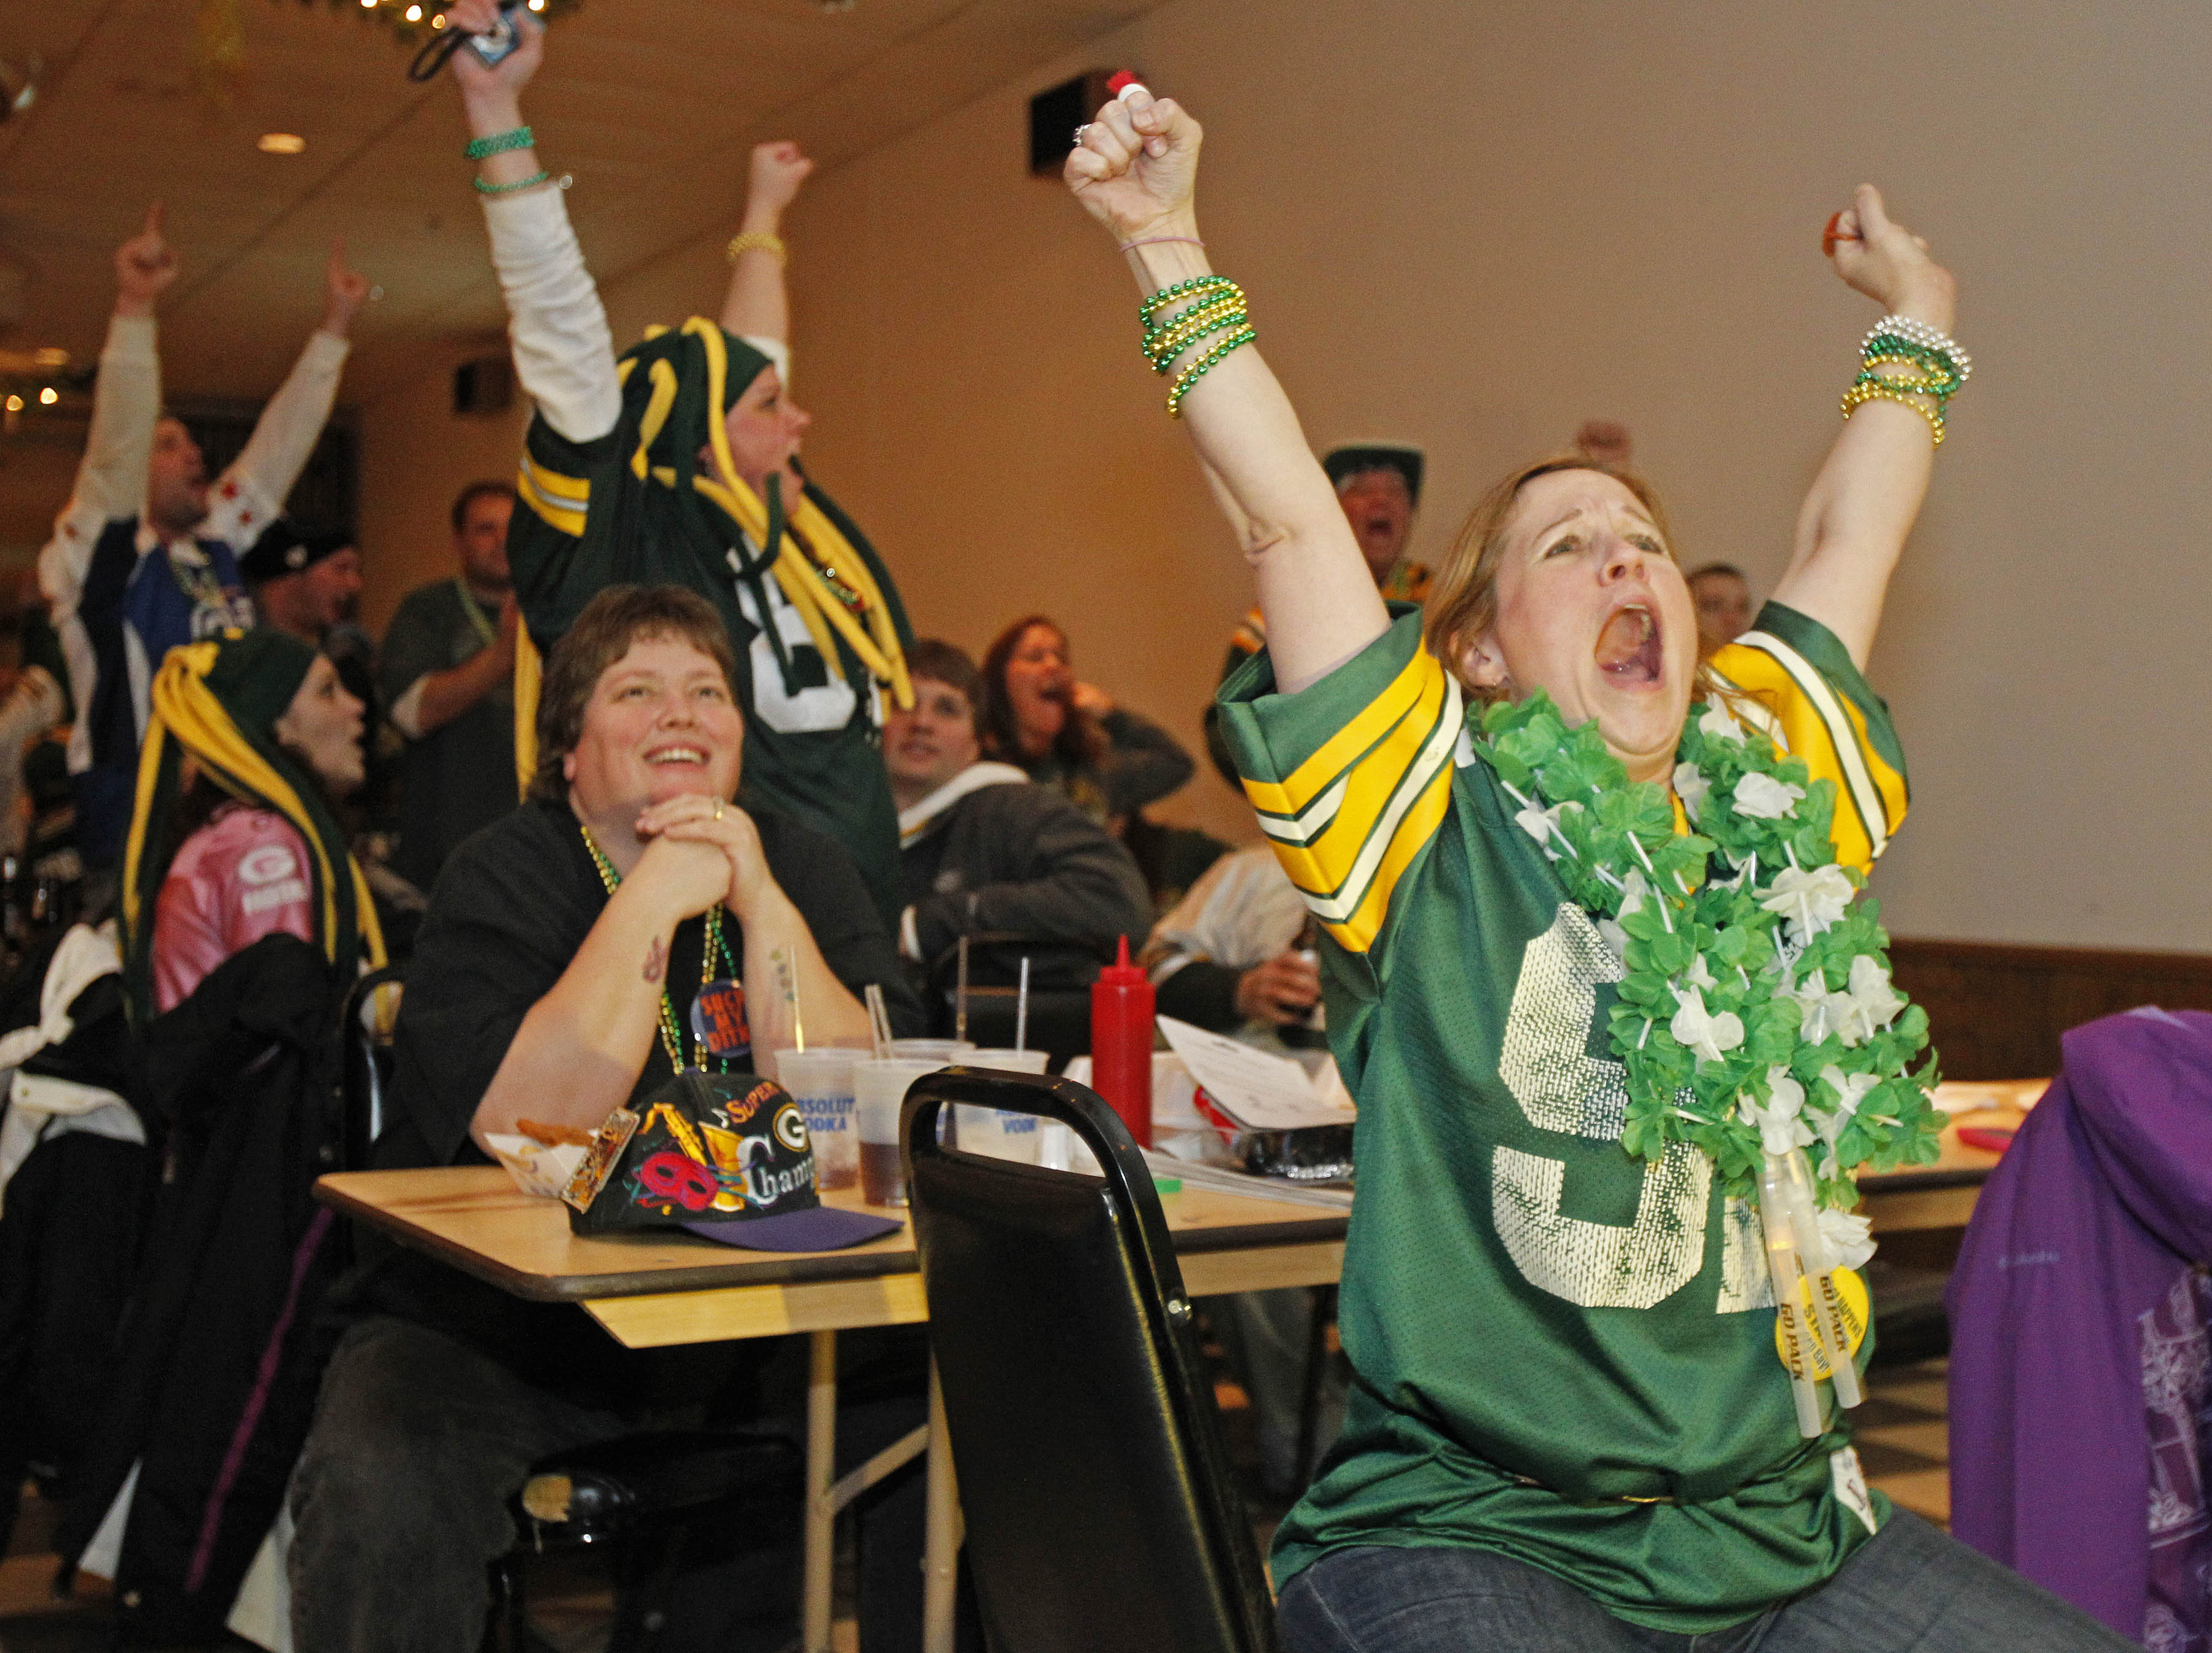 GREEN BAY, WI - FEBRUARY 06: Green Bay Packers fan Kitzi Muniz cheers after a play while watching the Super Bowl at Stadium View Bar on February 6, 2011 in Green Bay, Wisconsin.  (Photo by Matt Ludtke/Getty Images)